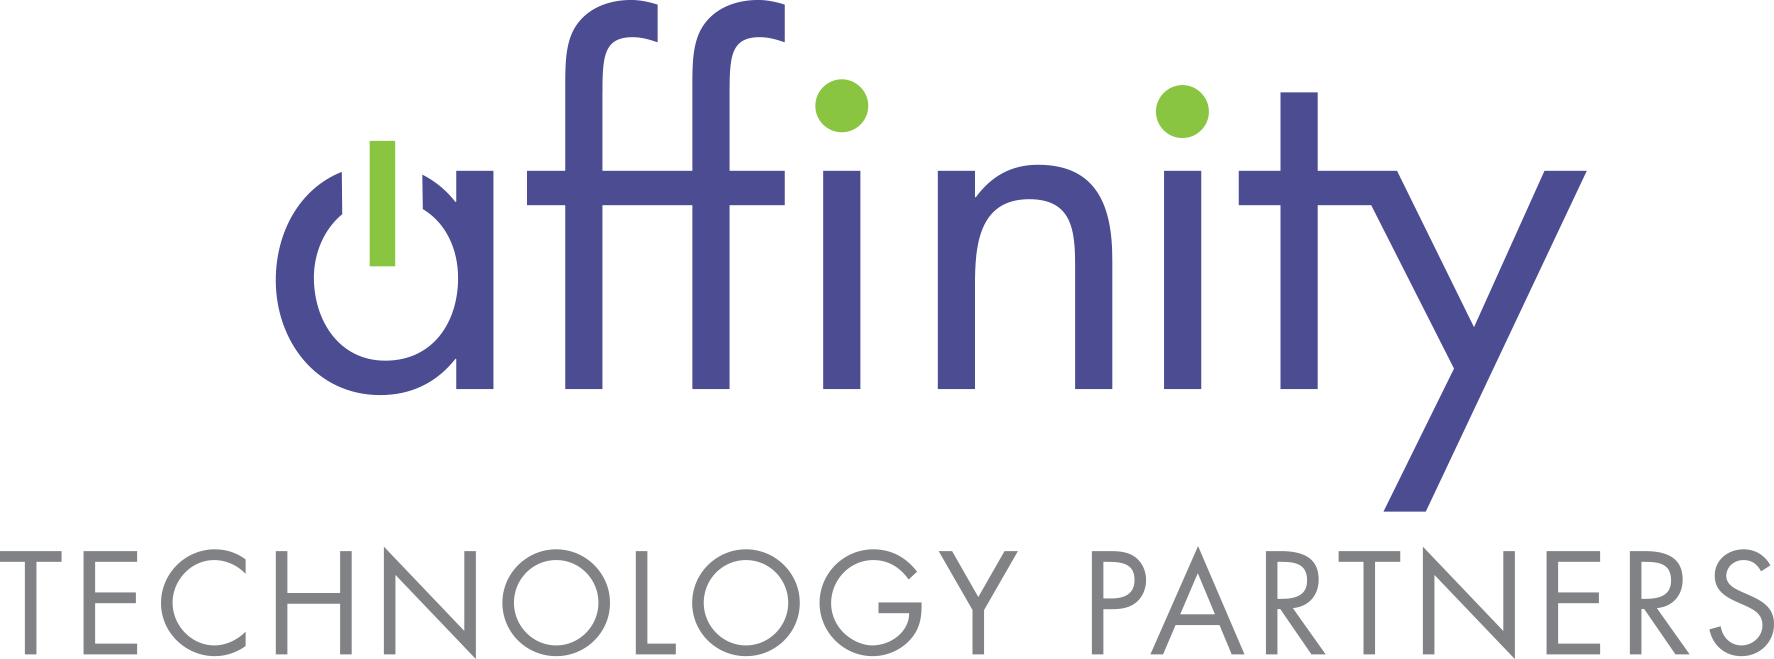 affinity Technology Partners